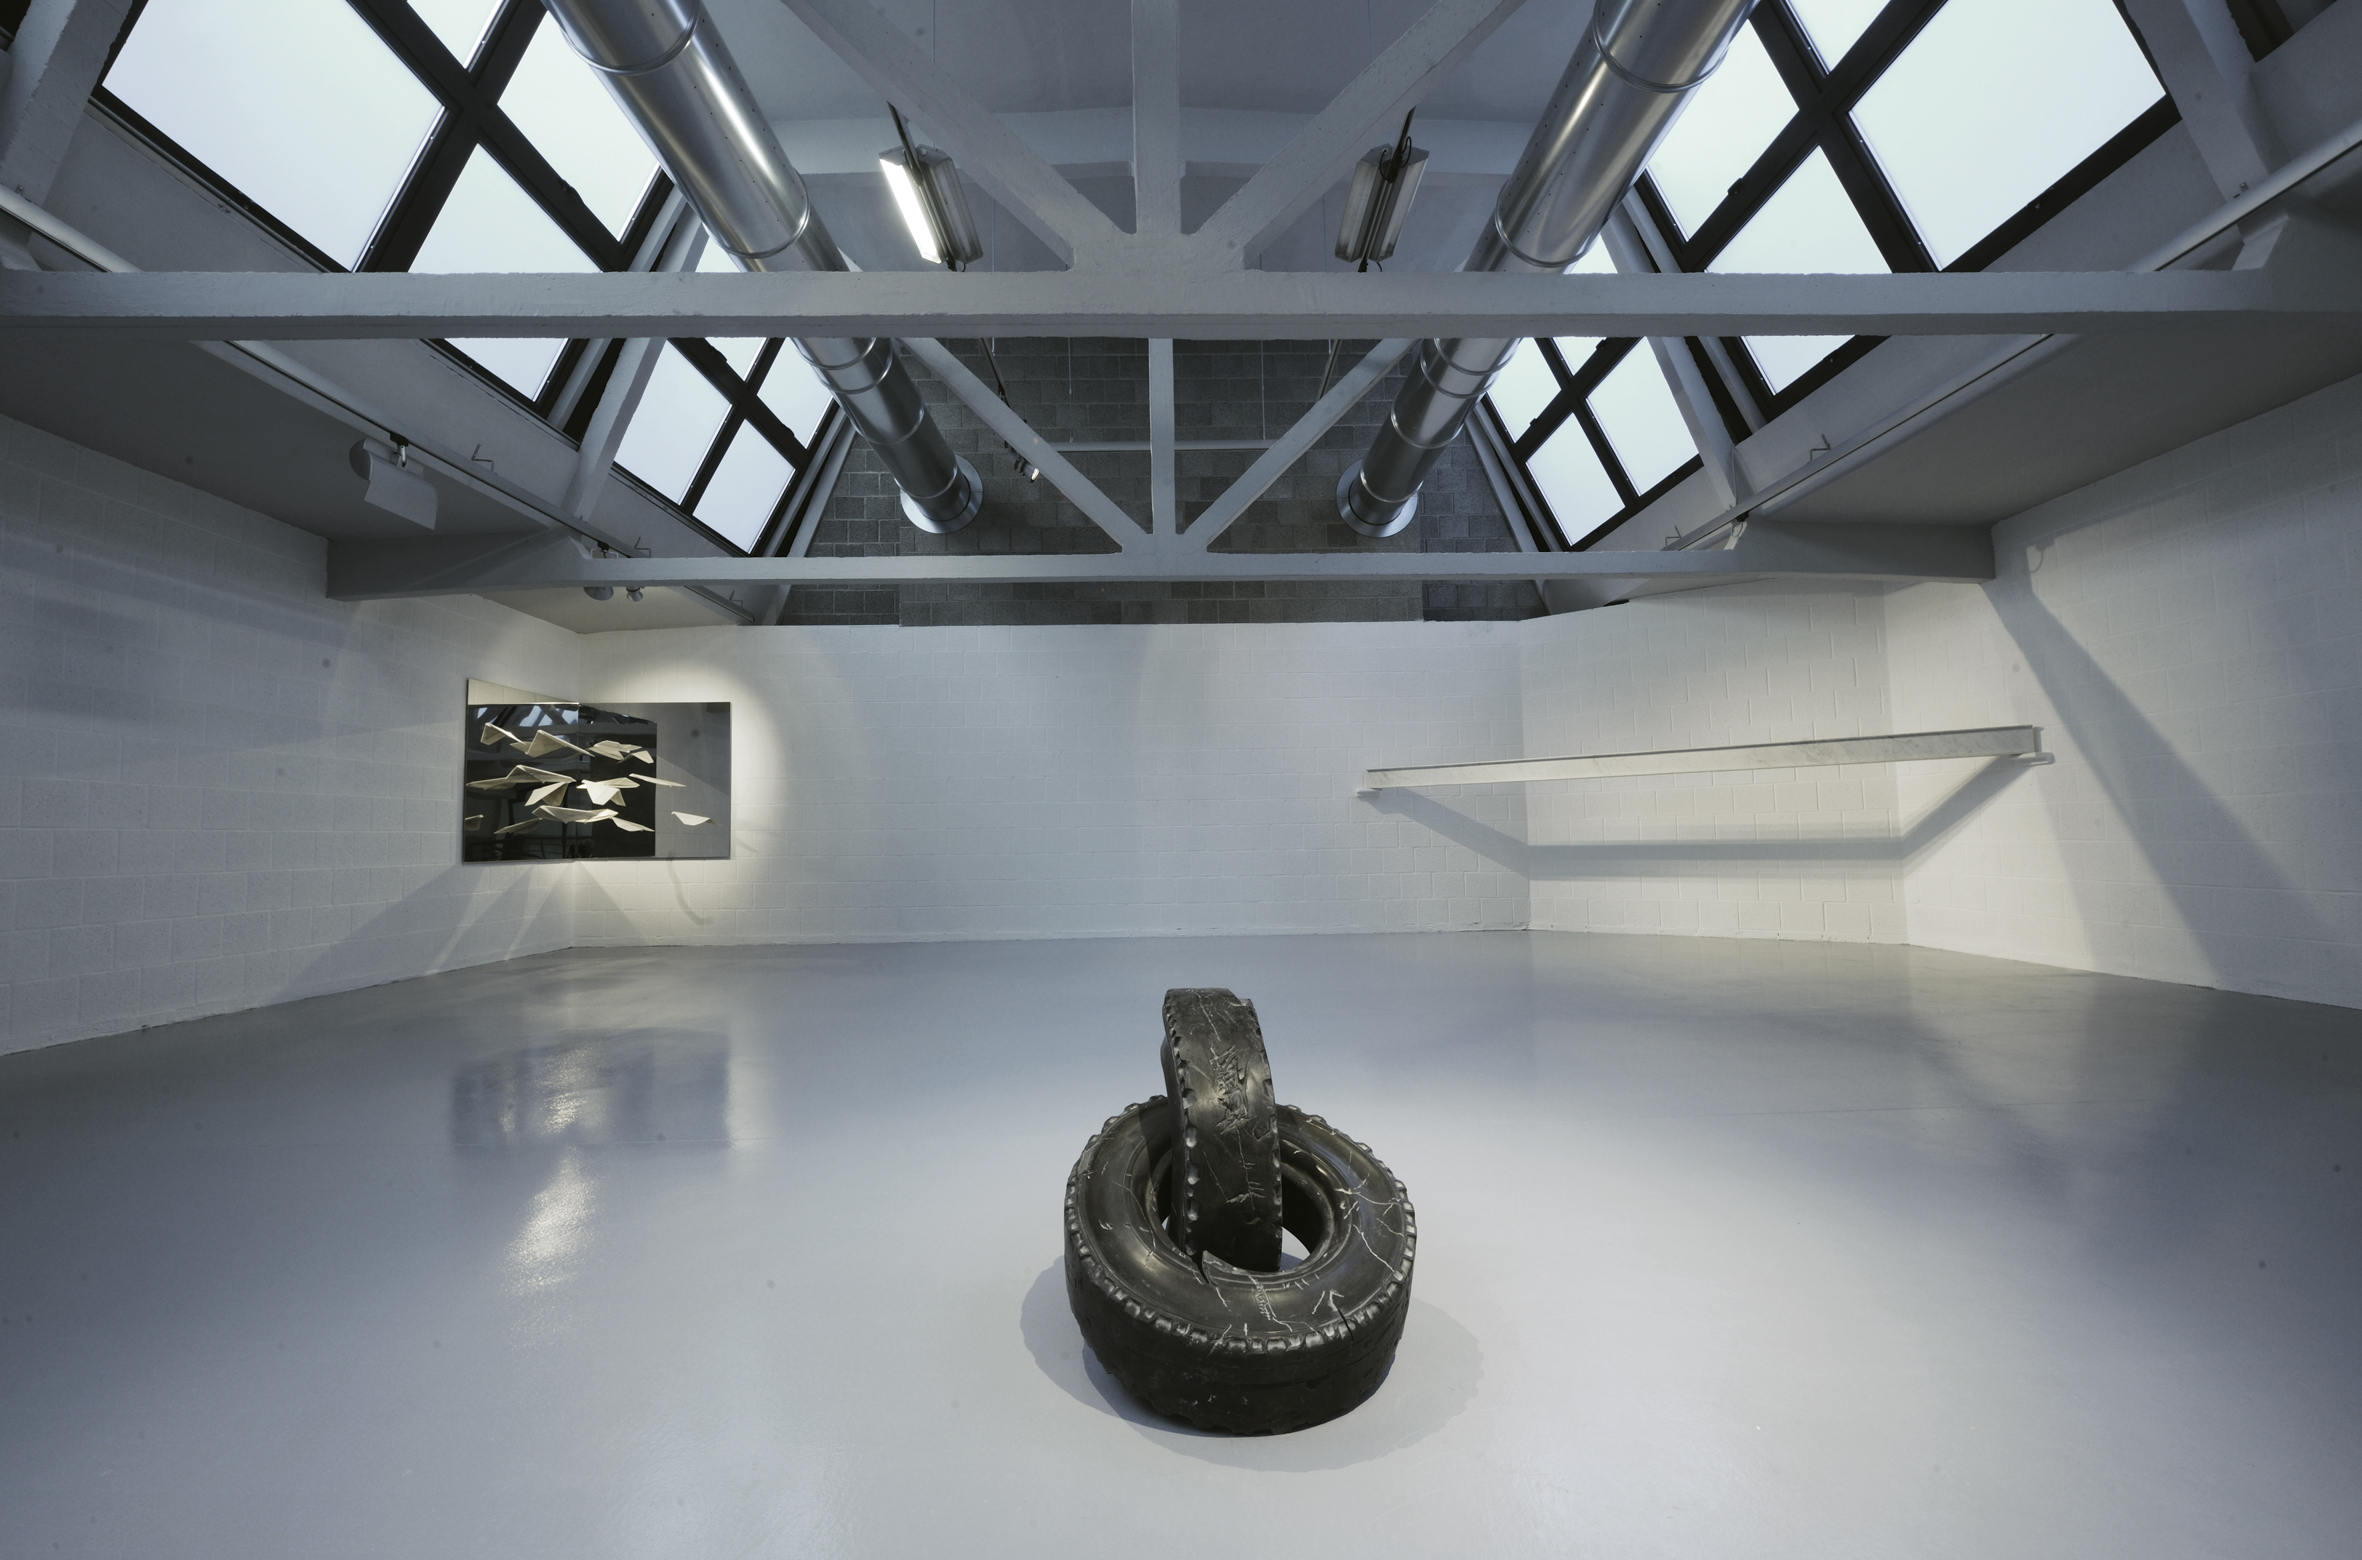 Gagliardi Art System, Installation View, courtesy Pietro Gagliardi